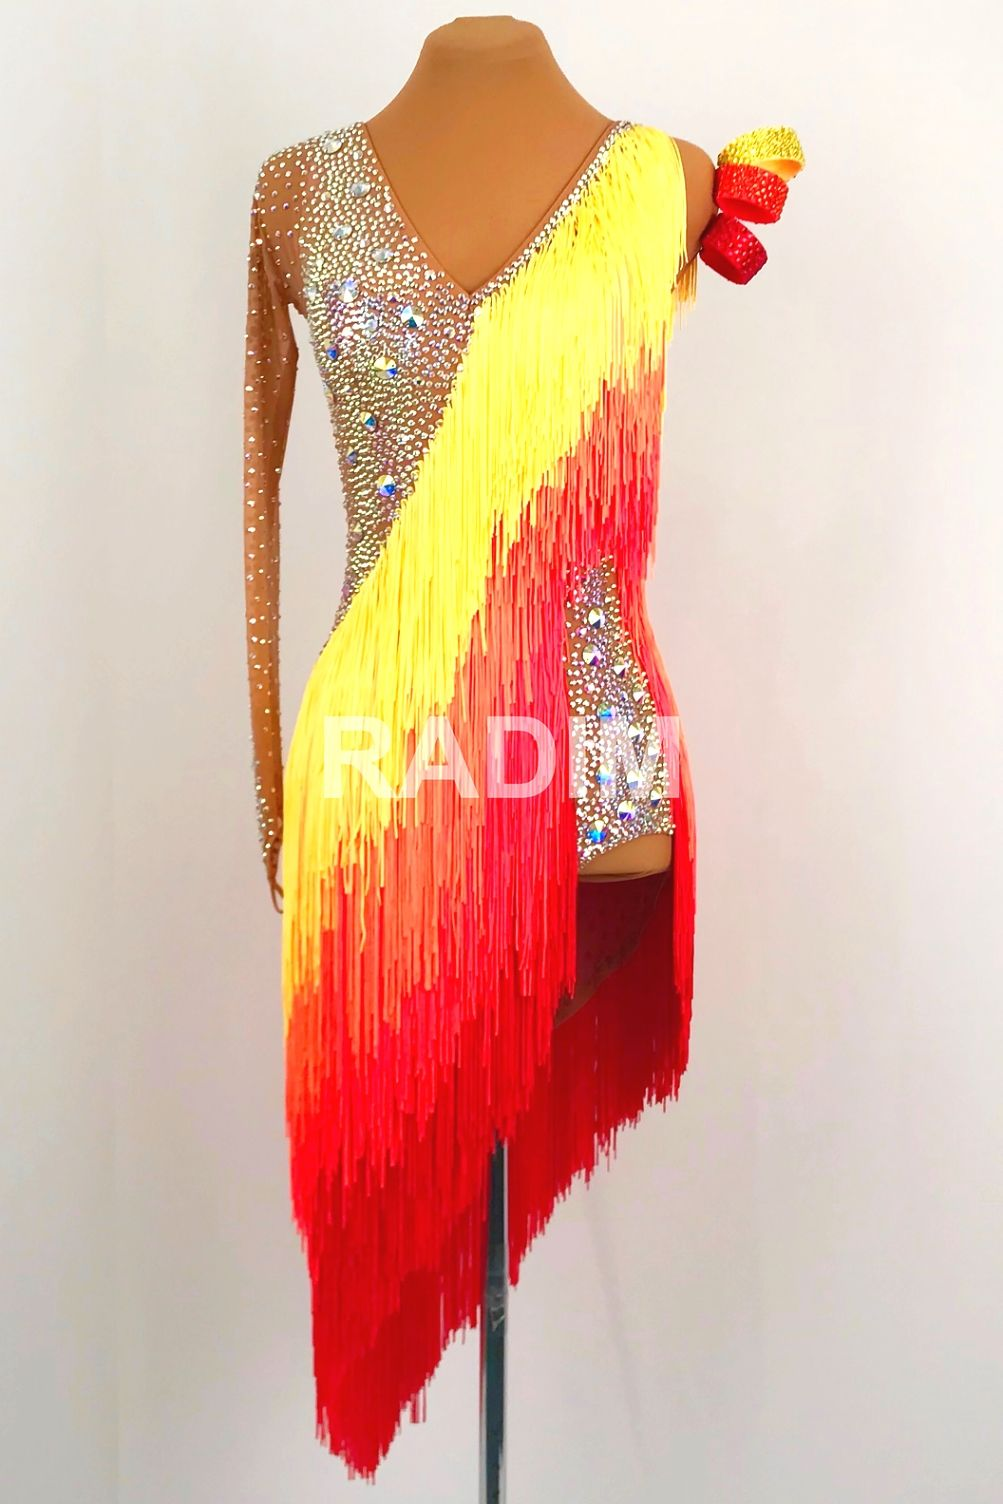 b635713cc5e1 Ballroom dancing dresses. Ballroom dancing is just as popular as ever before,  a good reason certainly is the many motion pictures and tv series that  feature ...